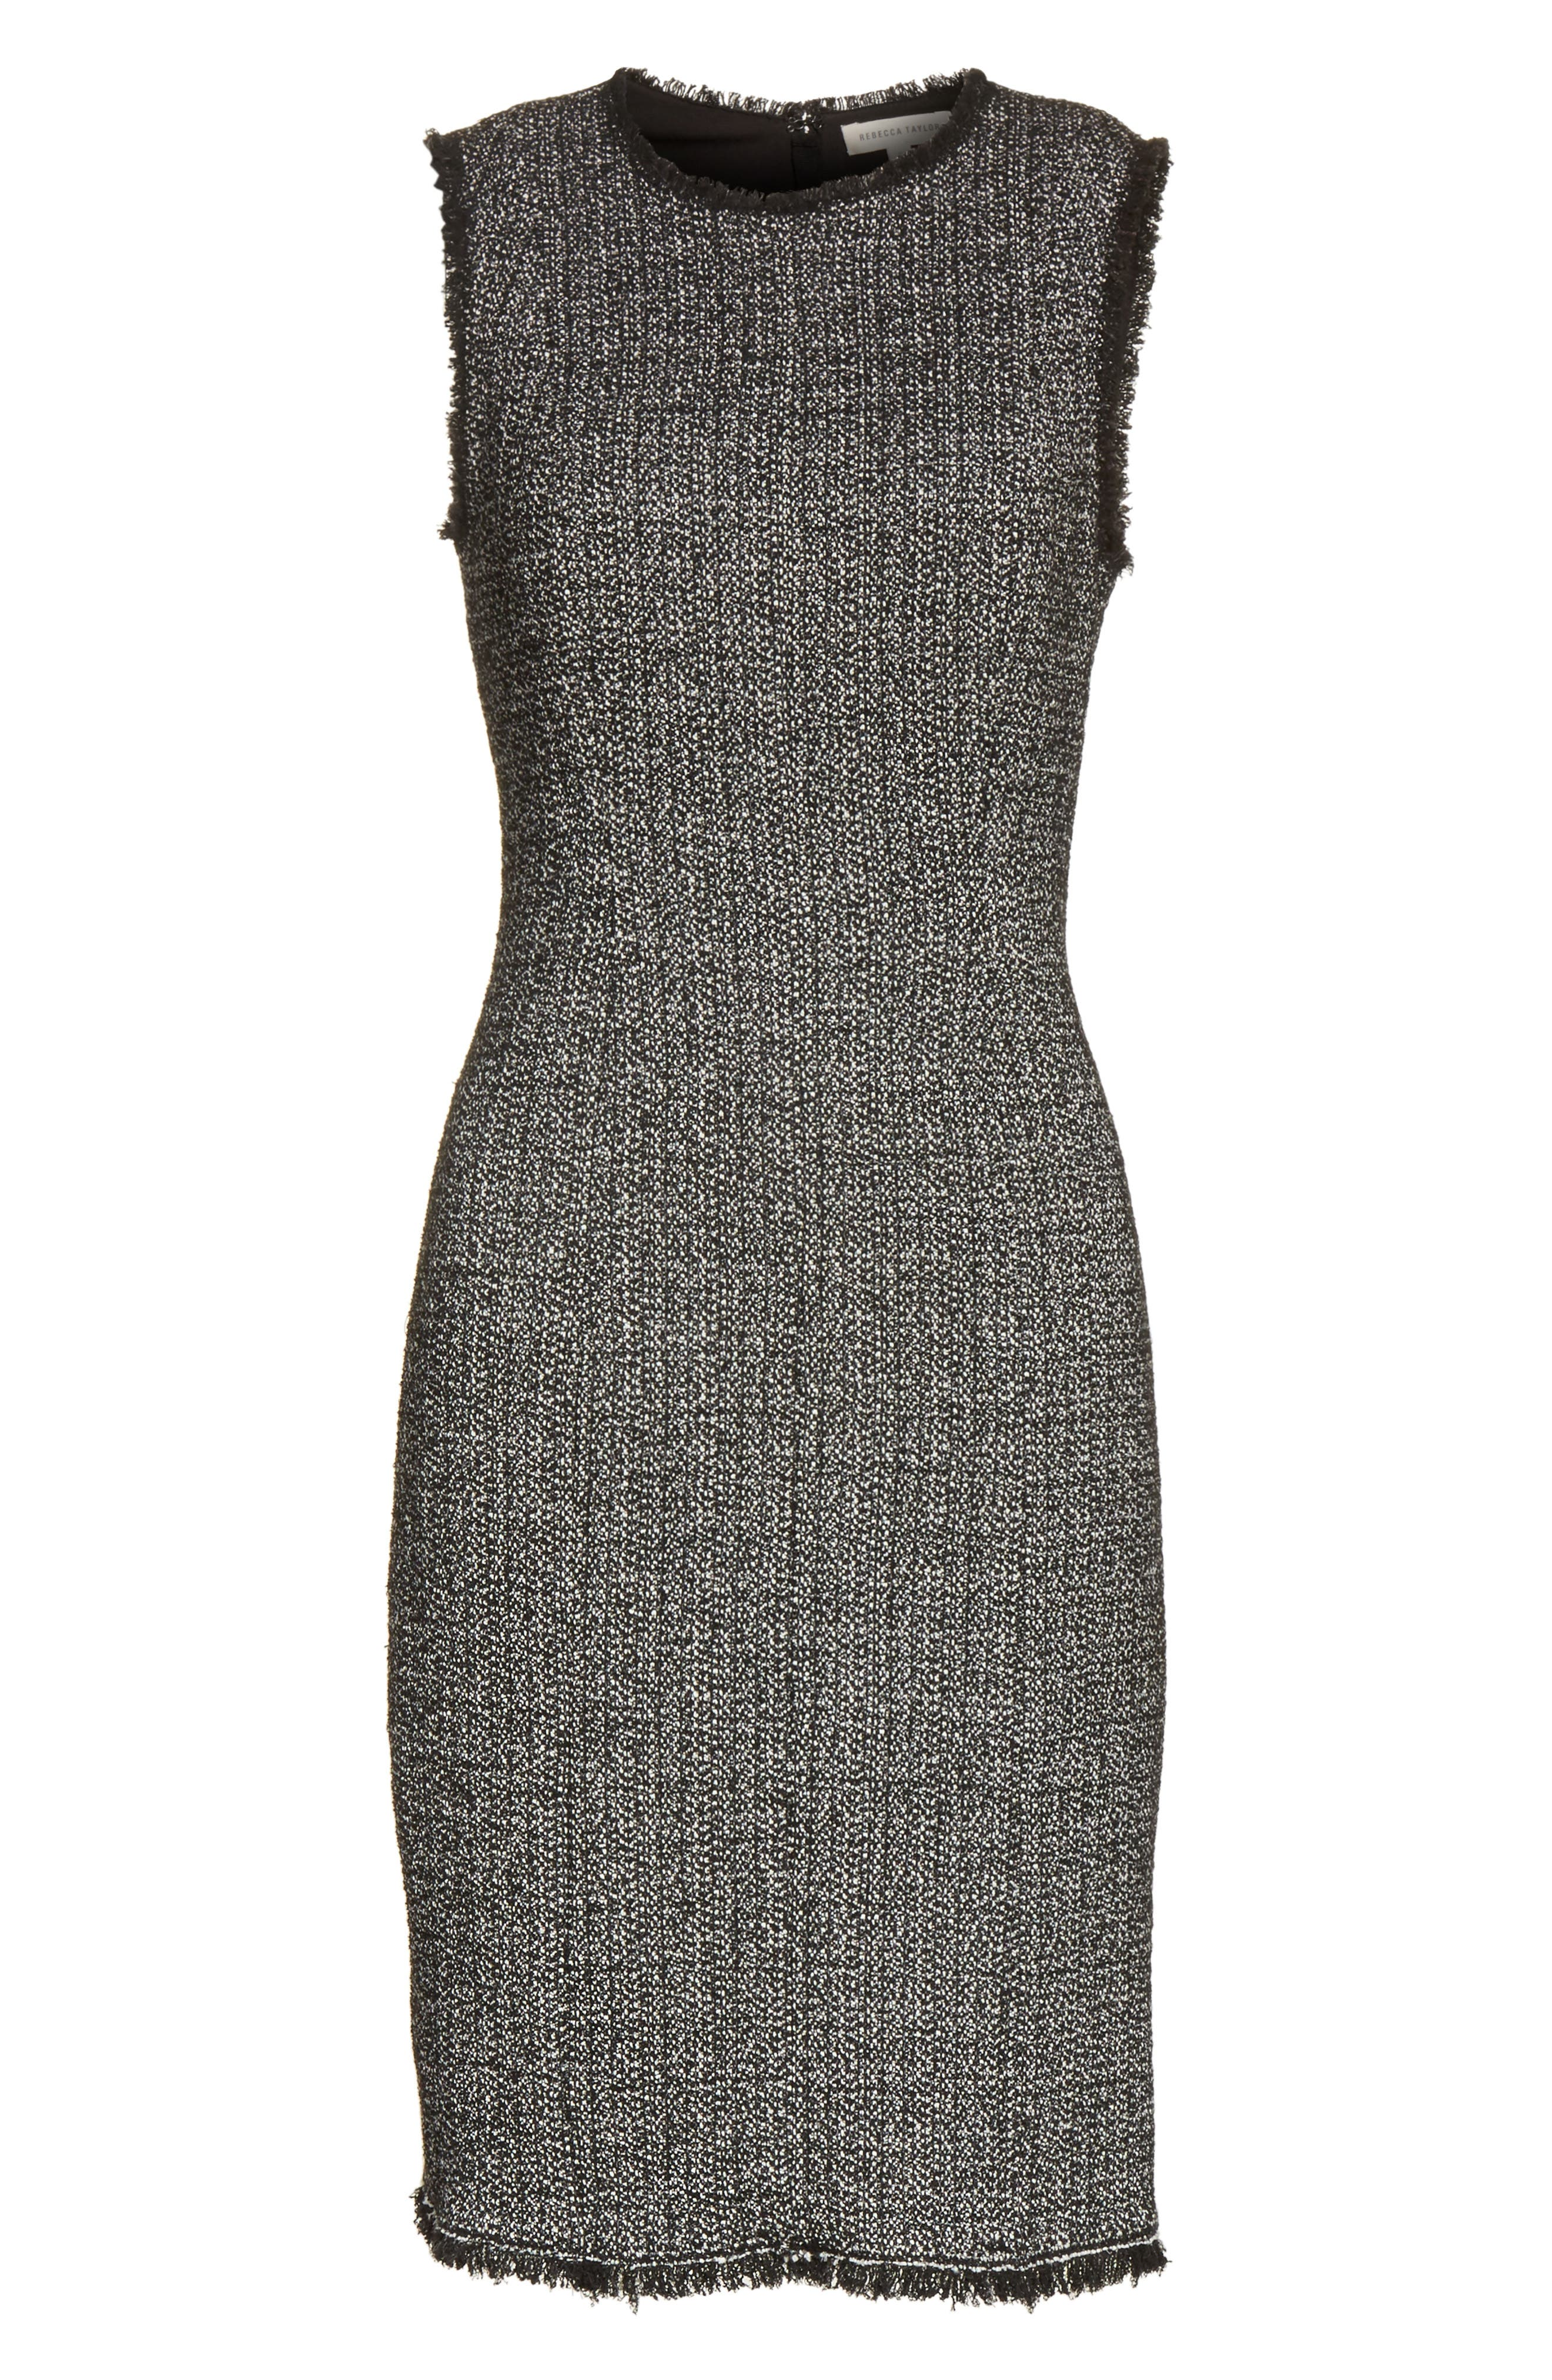 Tweed Sheath Dress,                             Alternate thumbnail 6, color,                             Black Combo